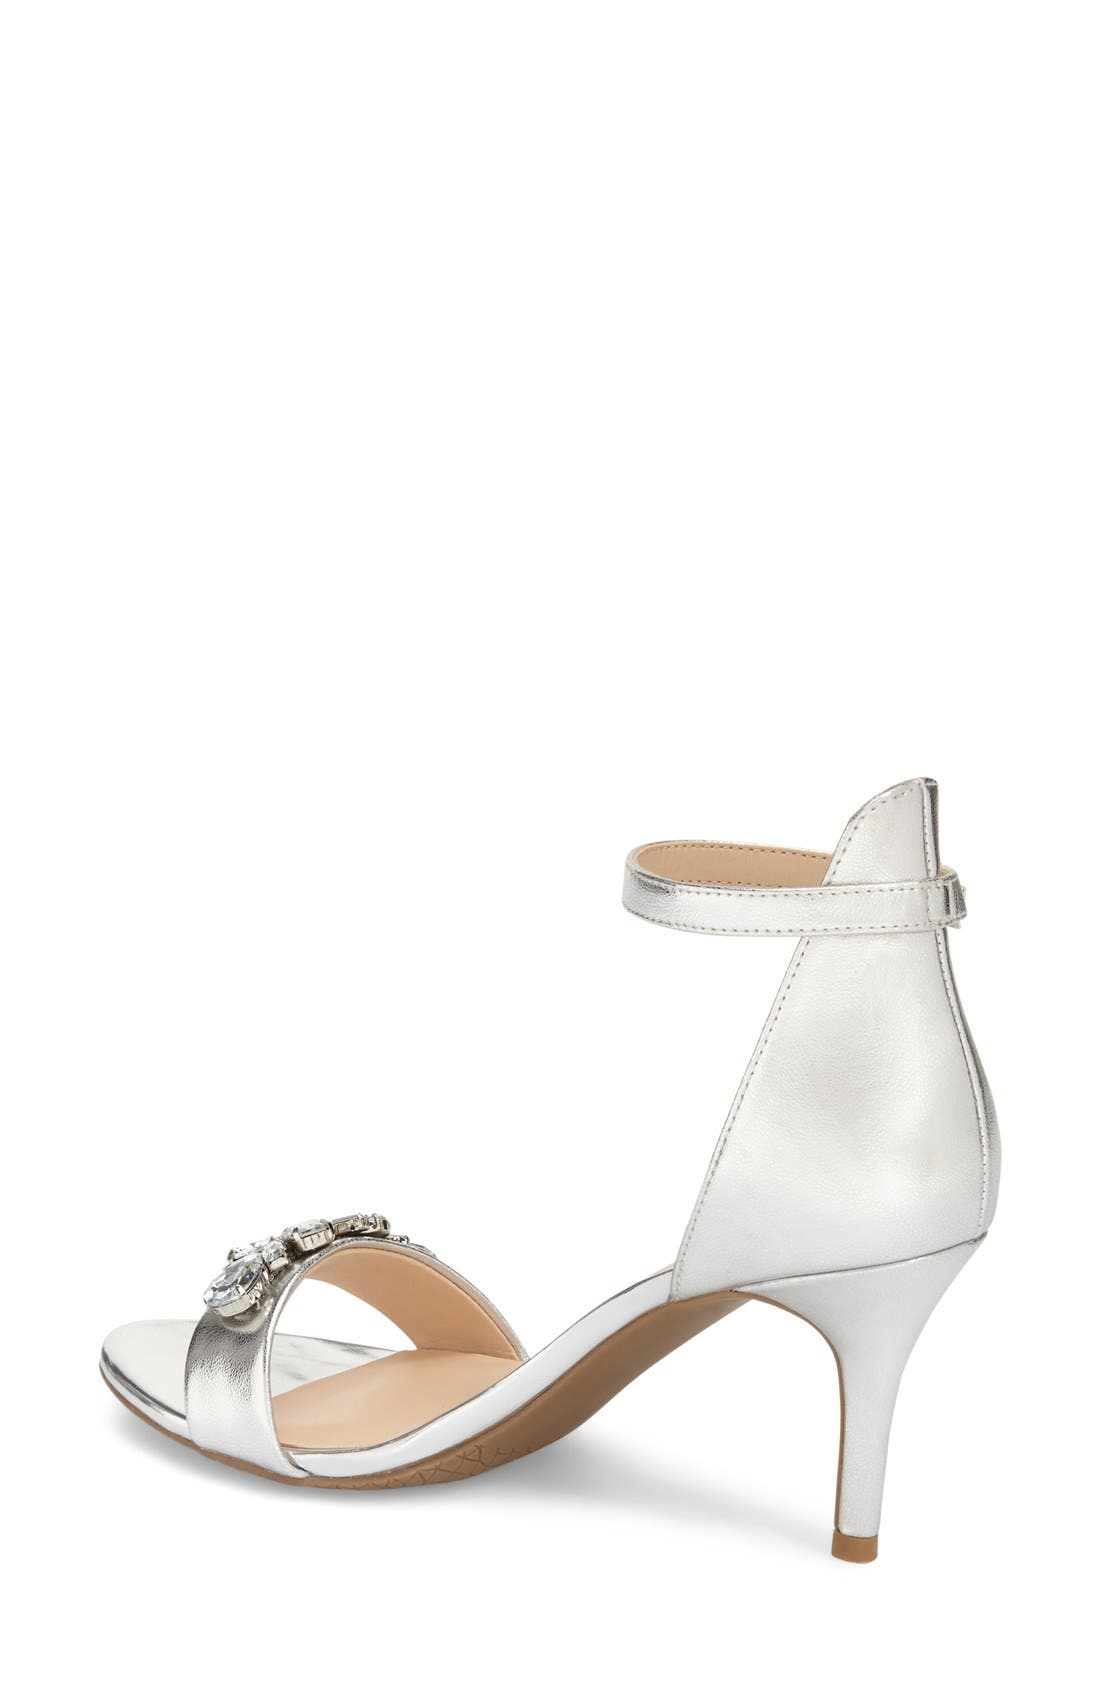 'Luminate' Open Toe Dress Sandal,                             Alternate thumbnail 72, color,